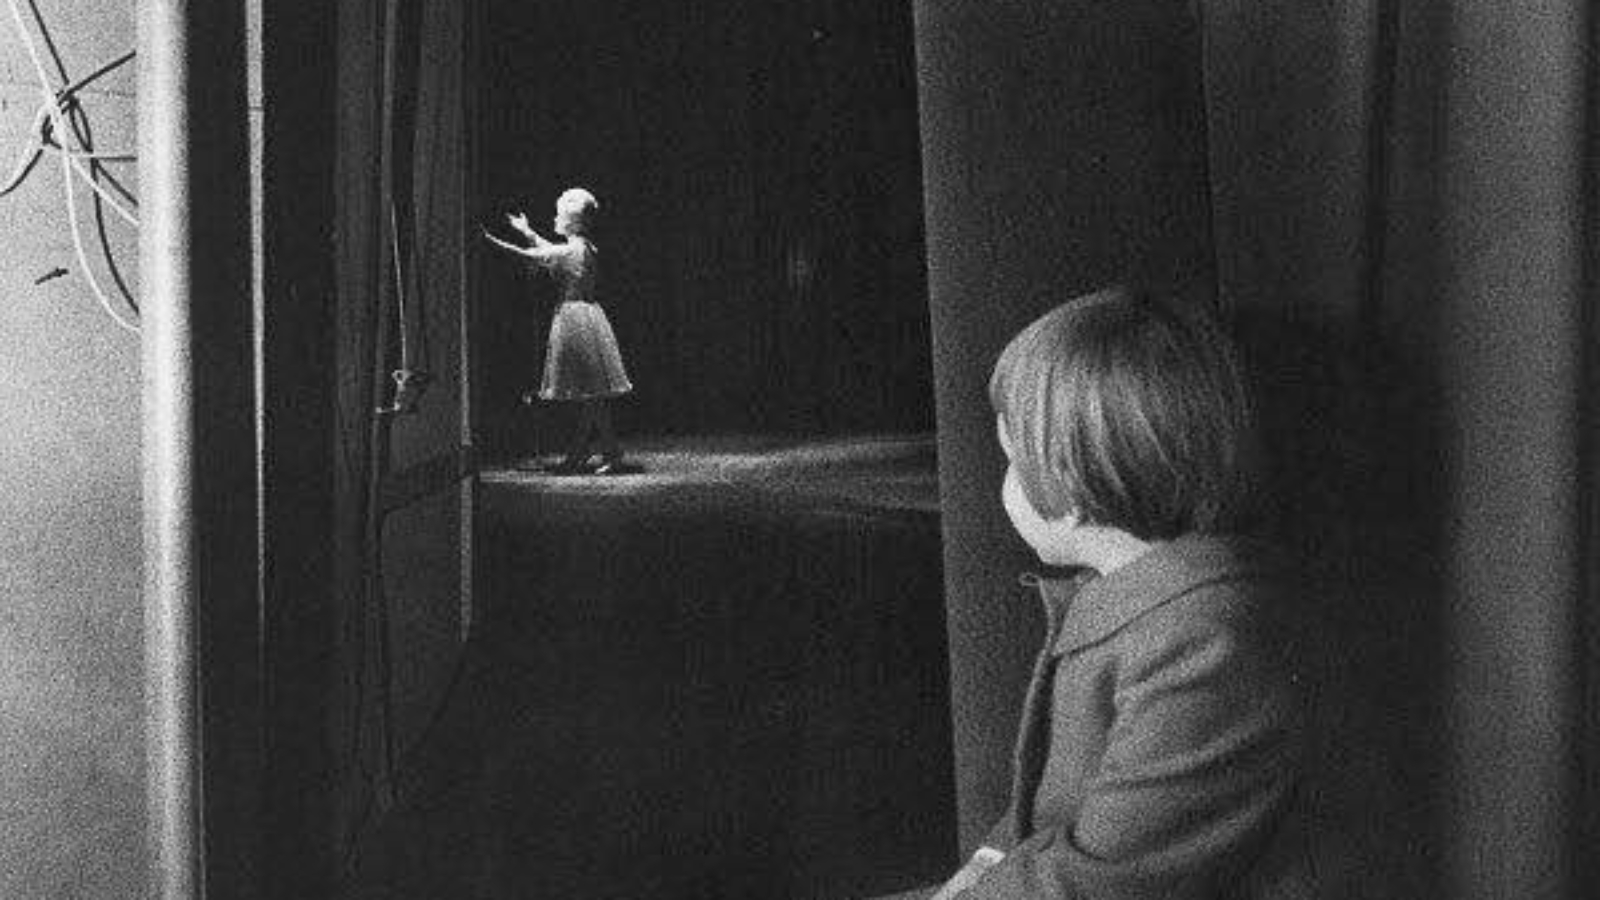 A very young Carrie Fisher watches her mom, Debbie Reynolds, on stage at the Riviera Hotel in Las Vegas, 1963 (photographer unknown).